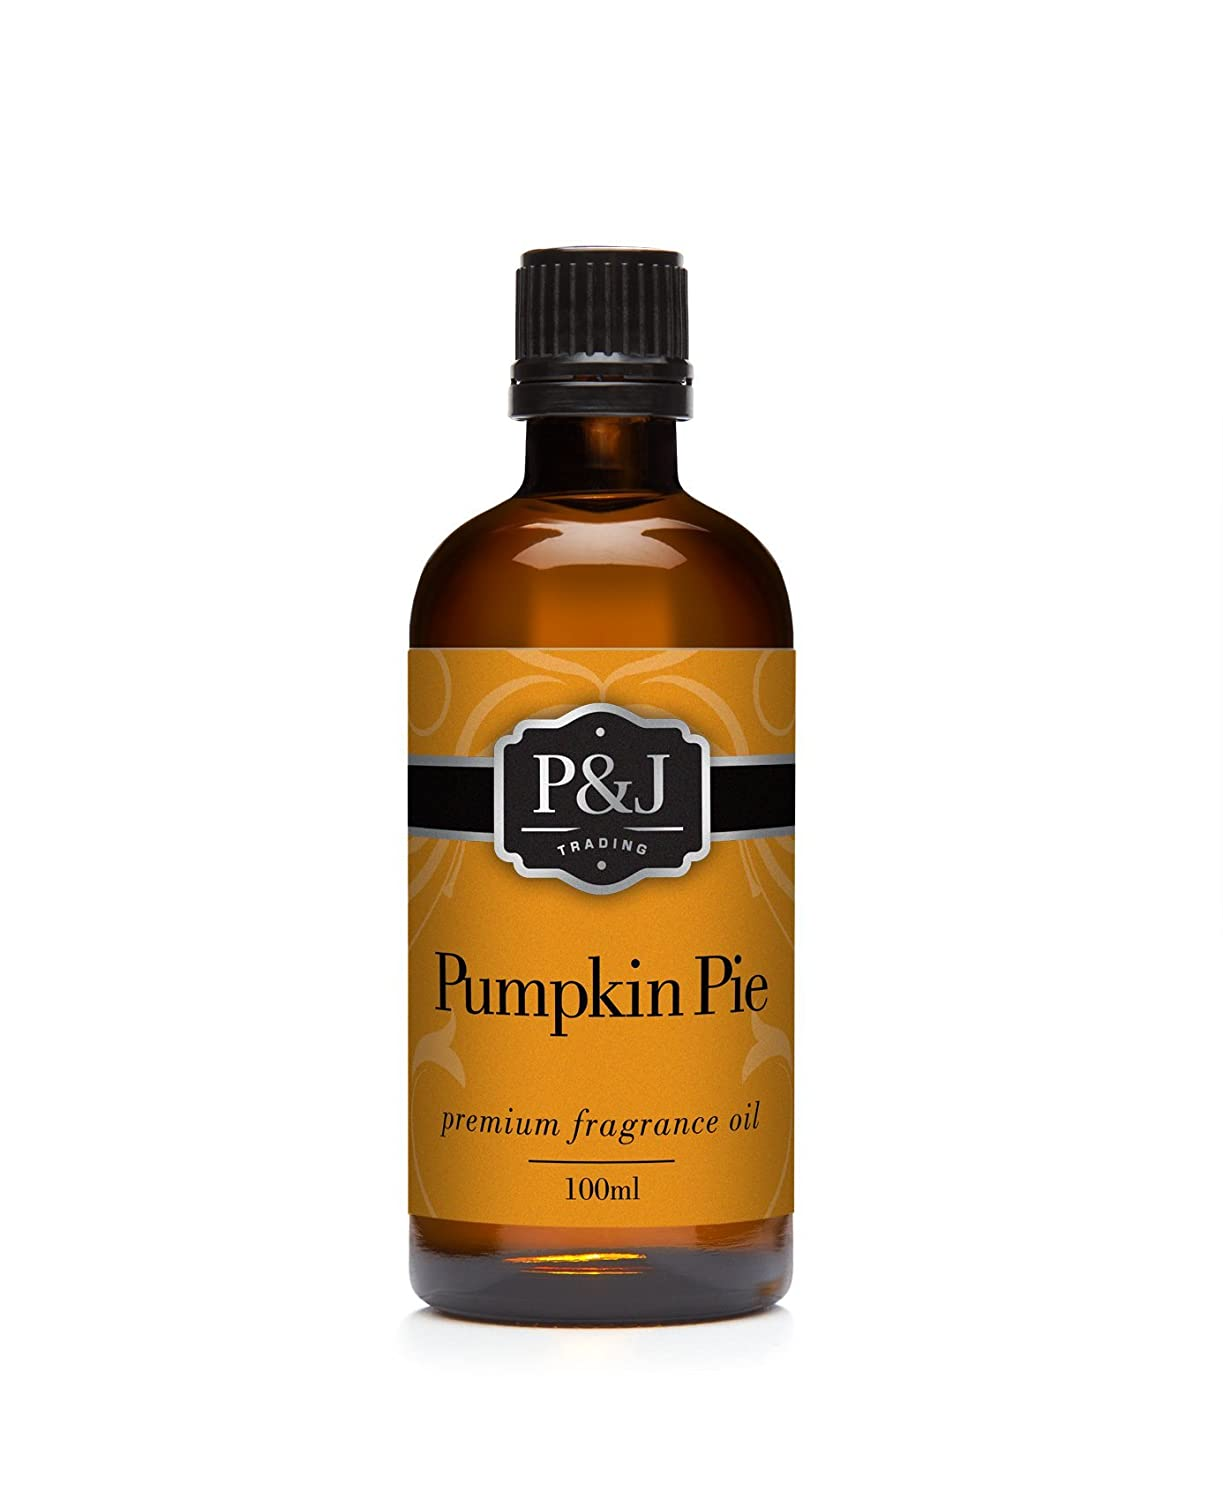 Pumpkin Pie Fragrance Oil - Premium Grade Scented Oil - 100ml/3.3oz